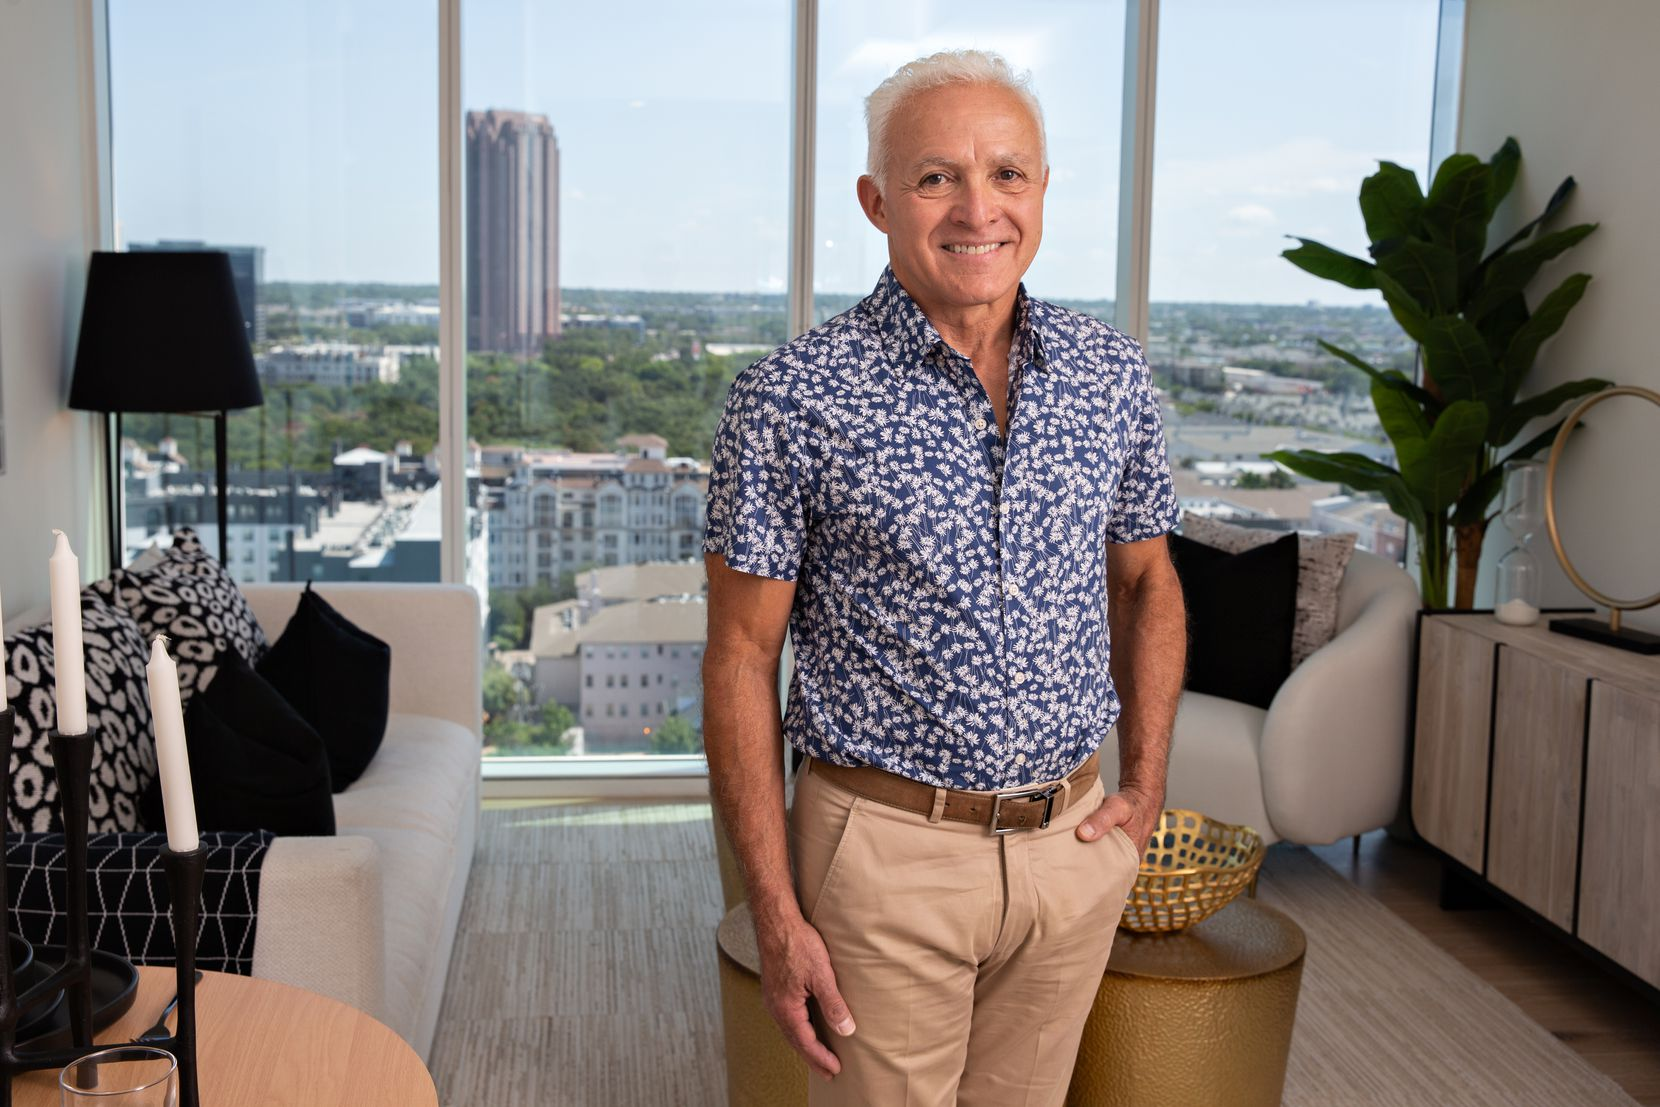 Al Coker, CEO of Al Coker & Associates, stands in one of the studio condos offered at One Uptown on McKinney Avenue in Uptown Dallas.